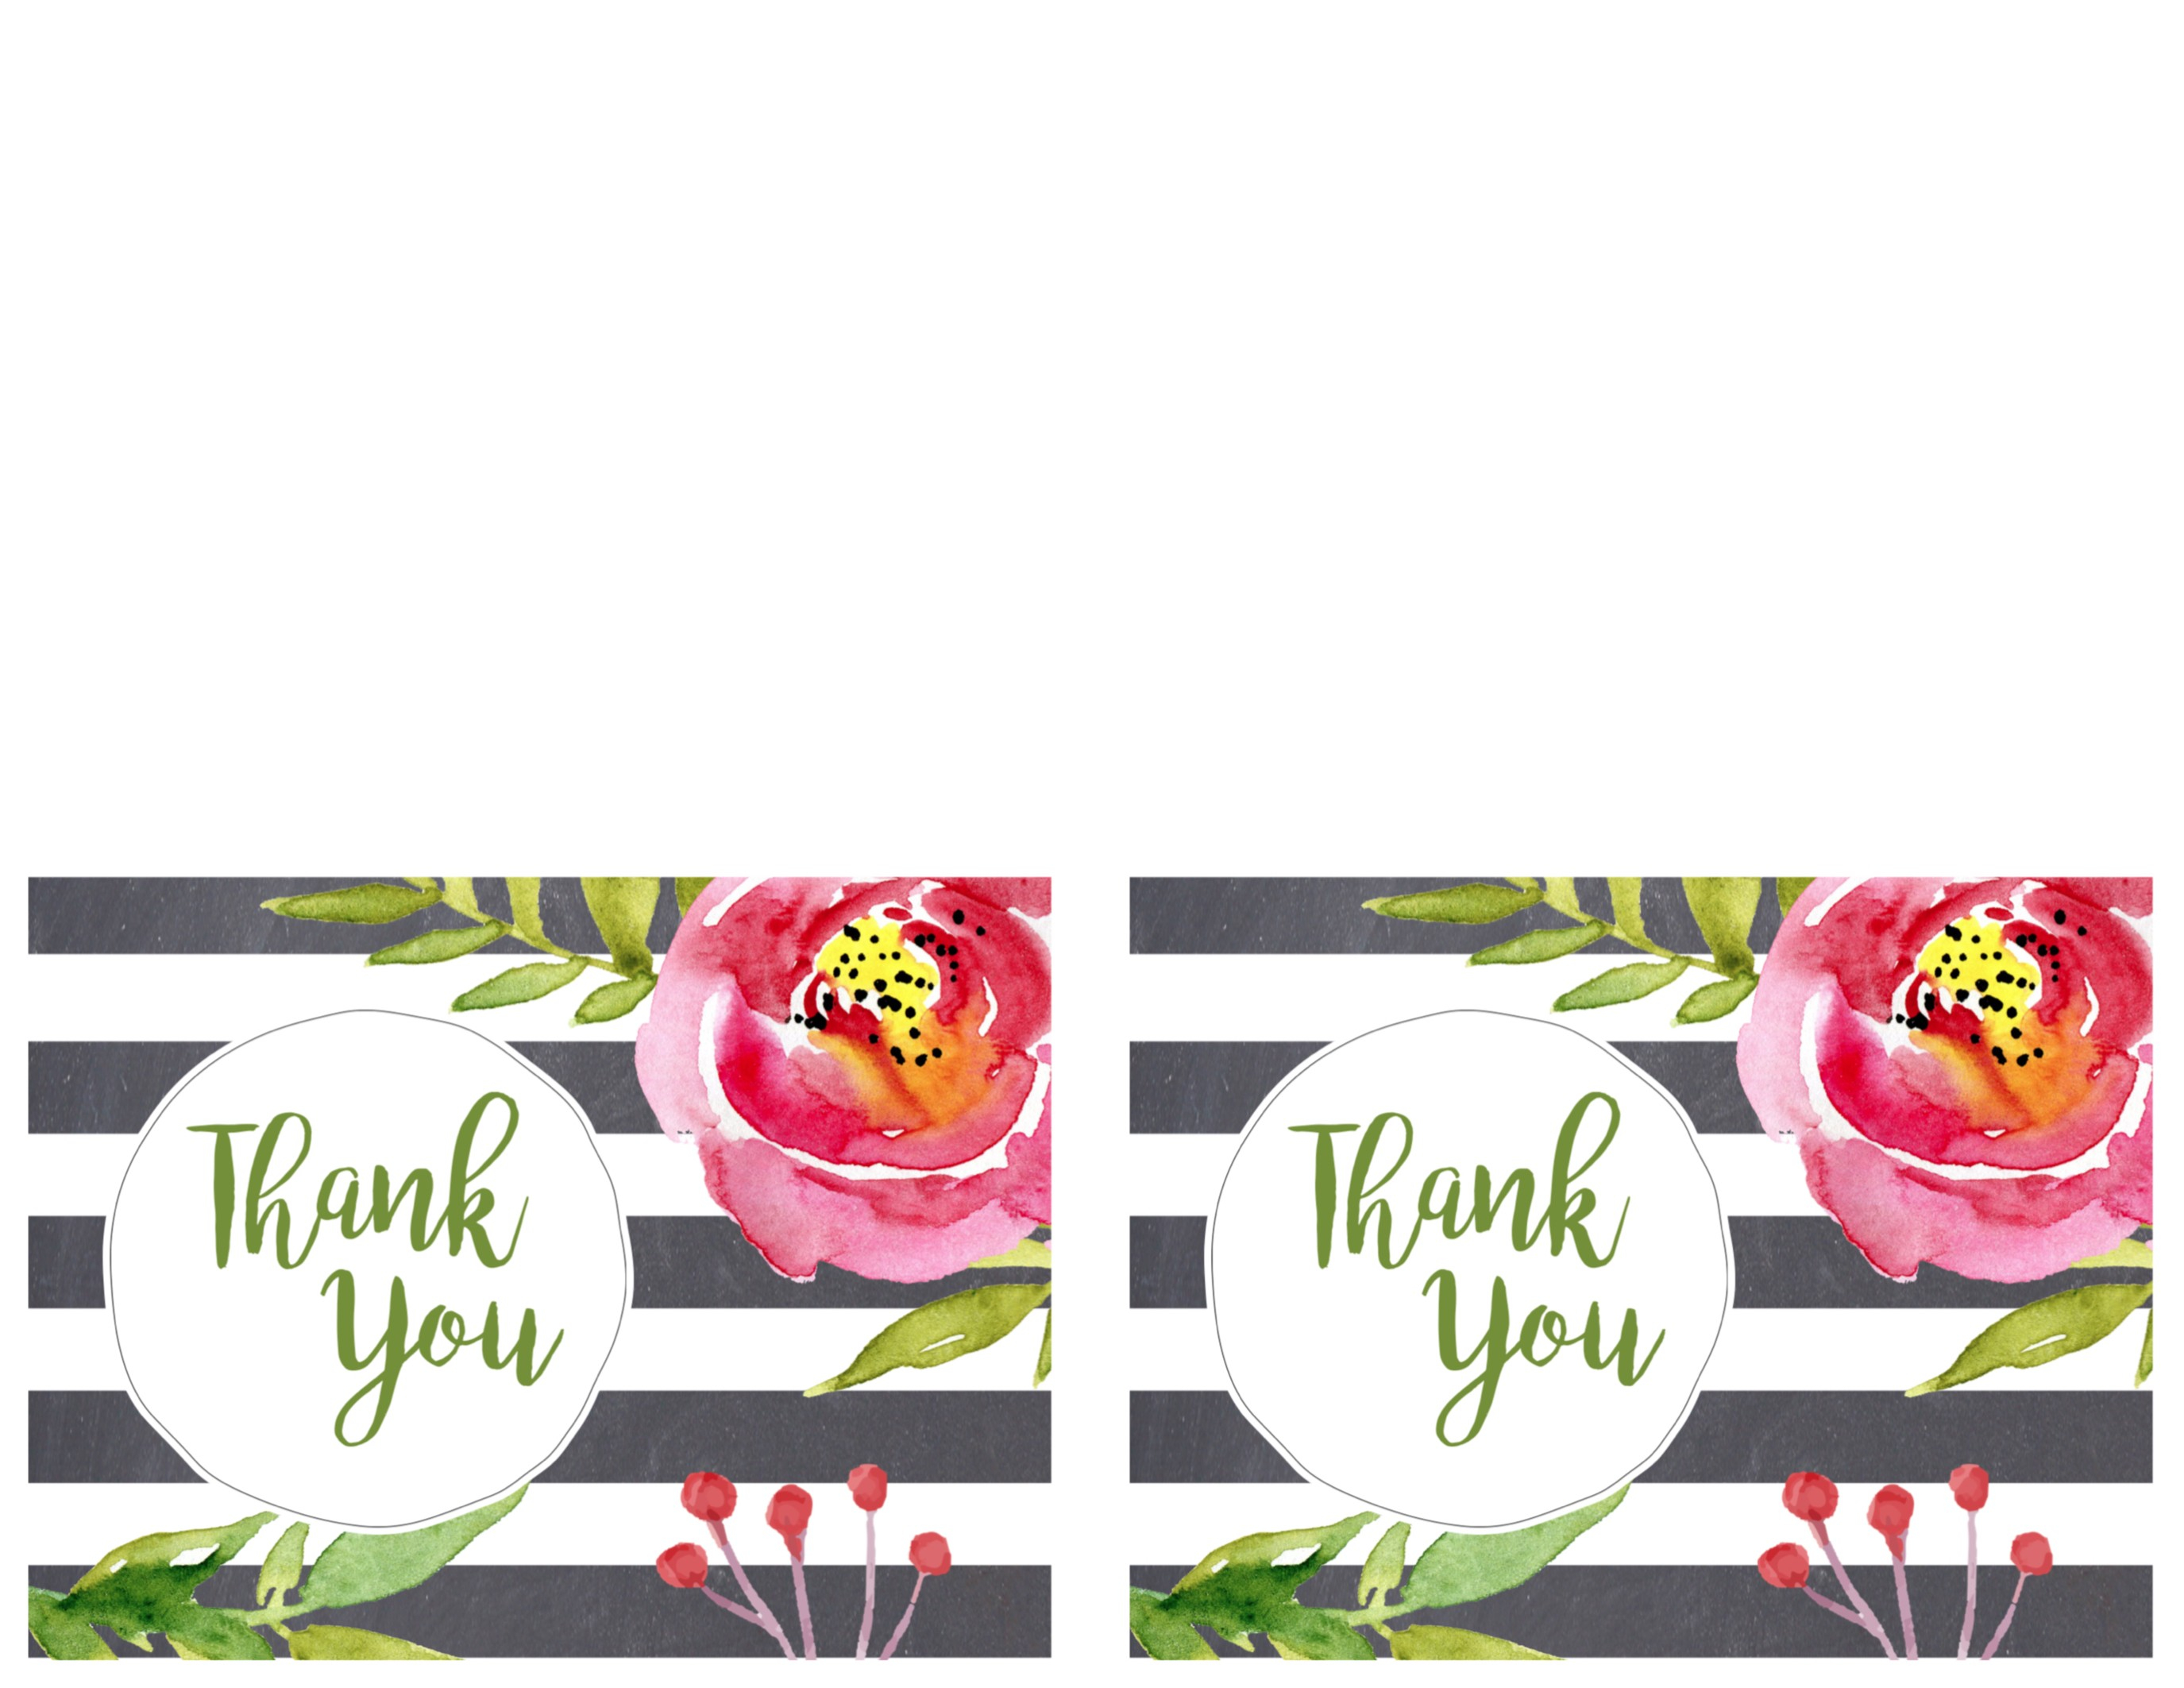 Birthday Cards To Print New Free Printable Greeting Cards Thank You - Free Printable Birthday Cards To Color